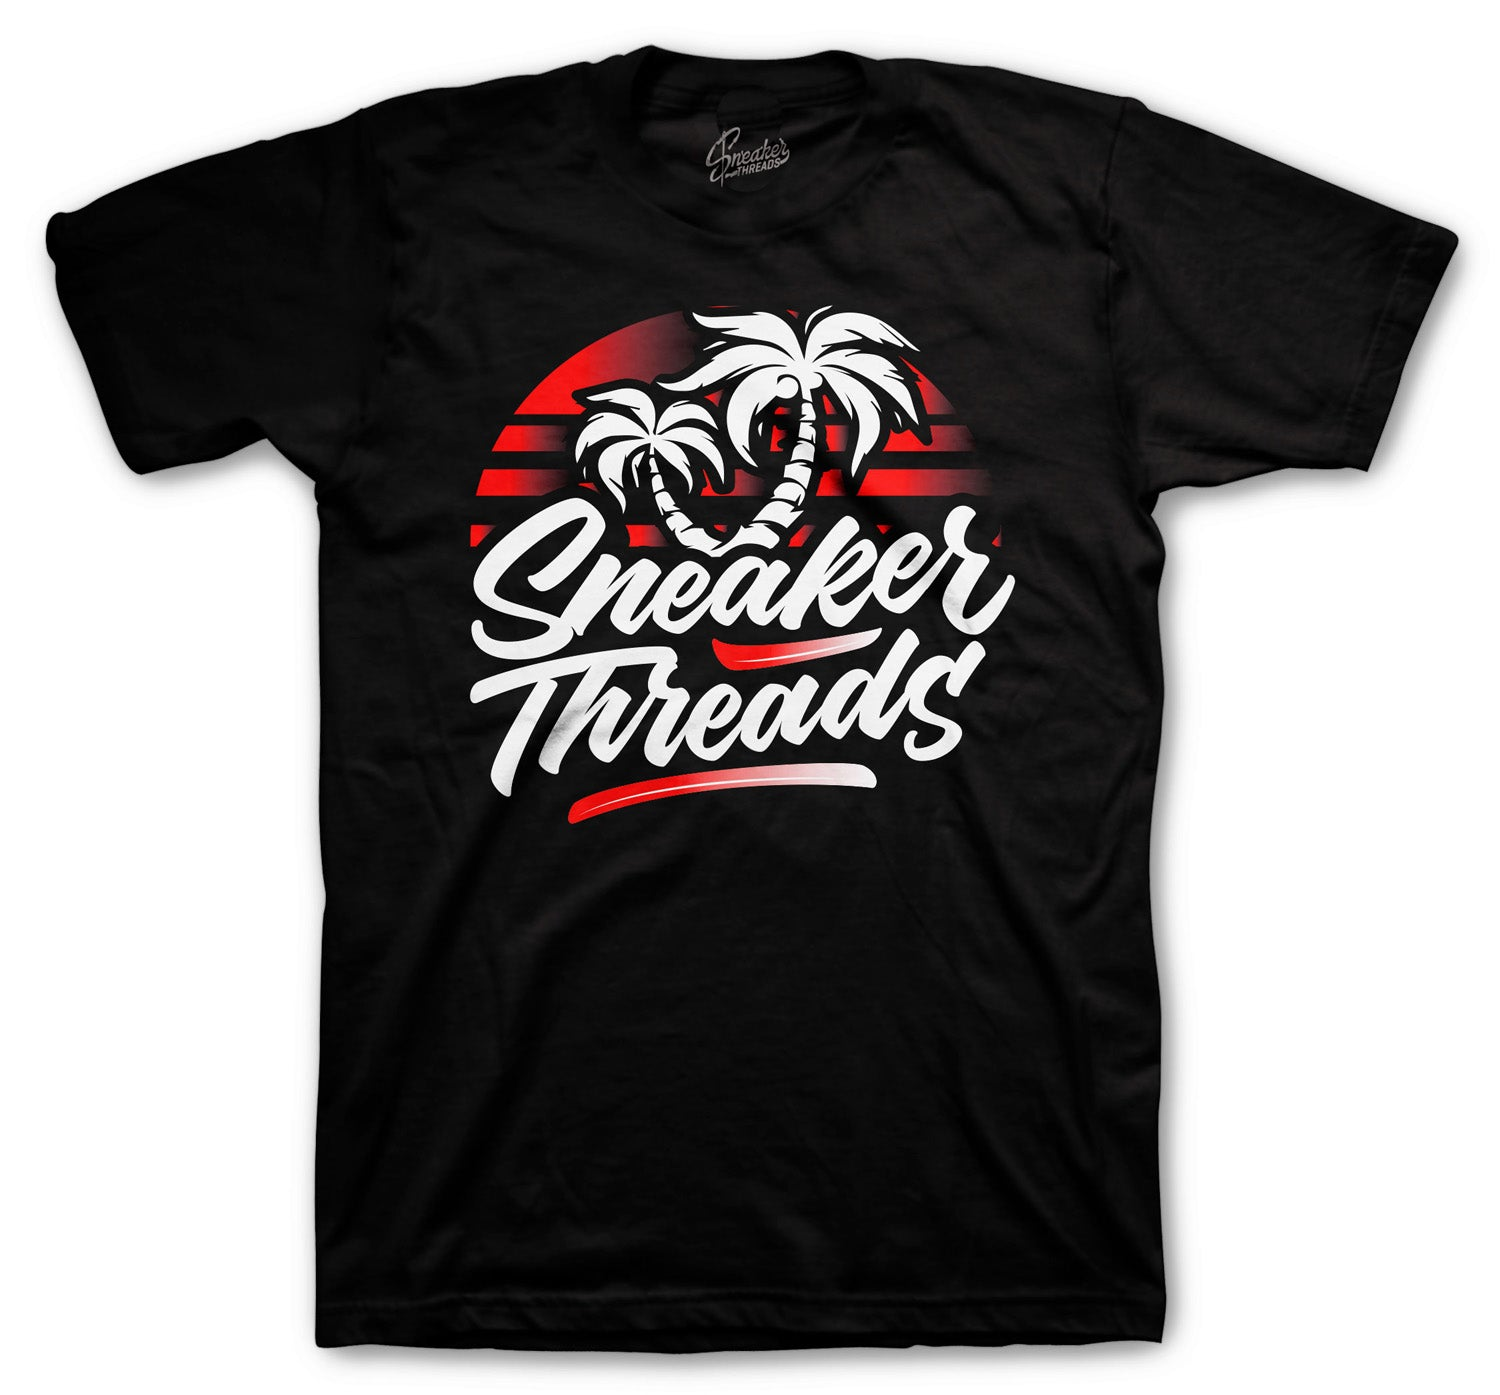 Sneakershirts for summer to match Jordan 11 Bred